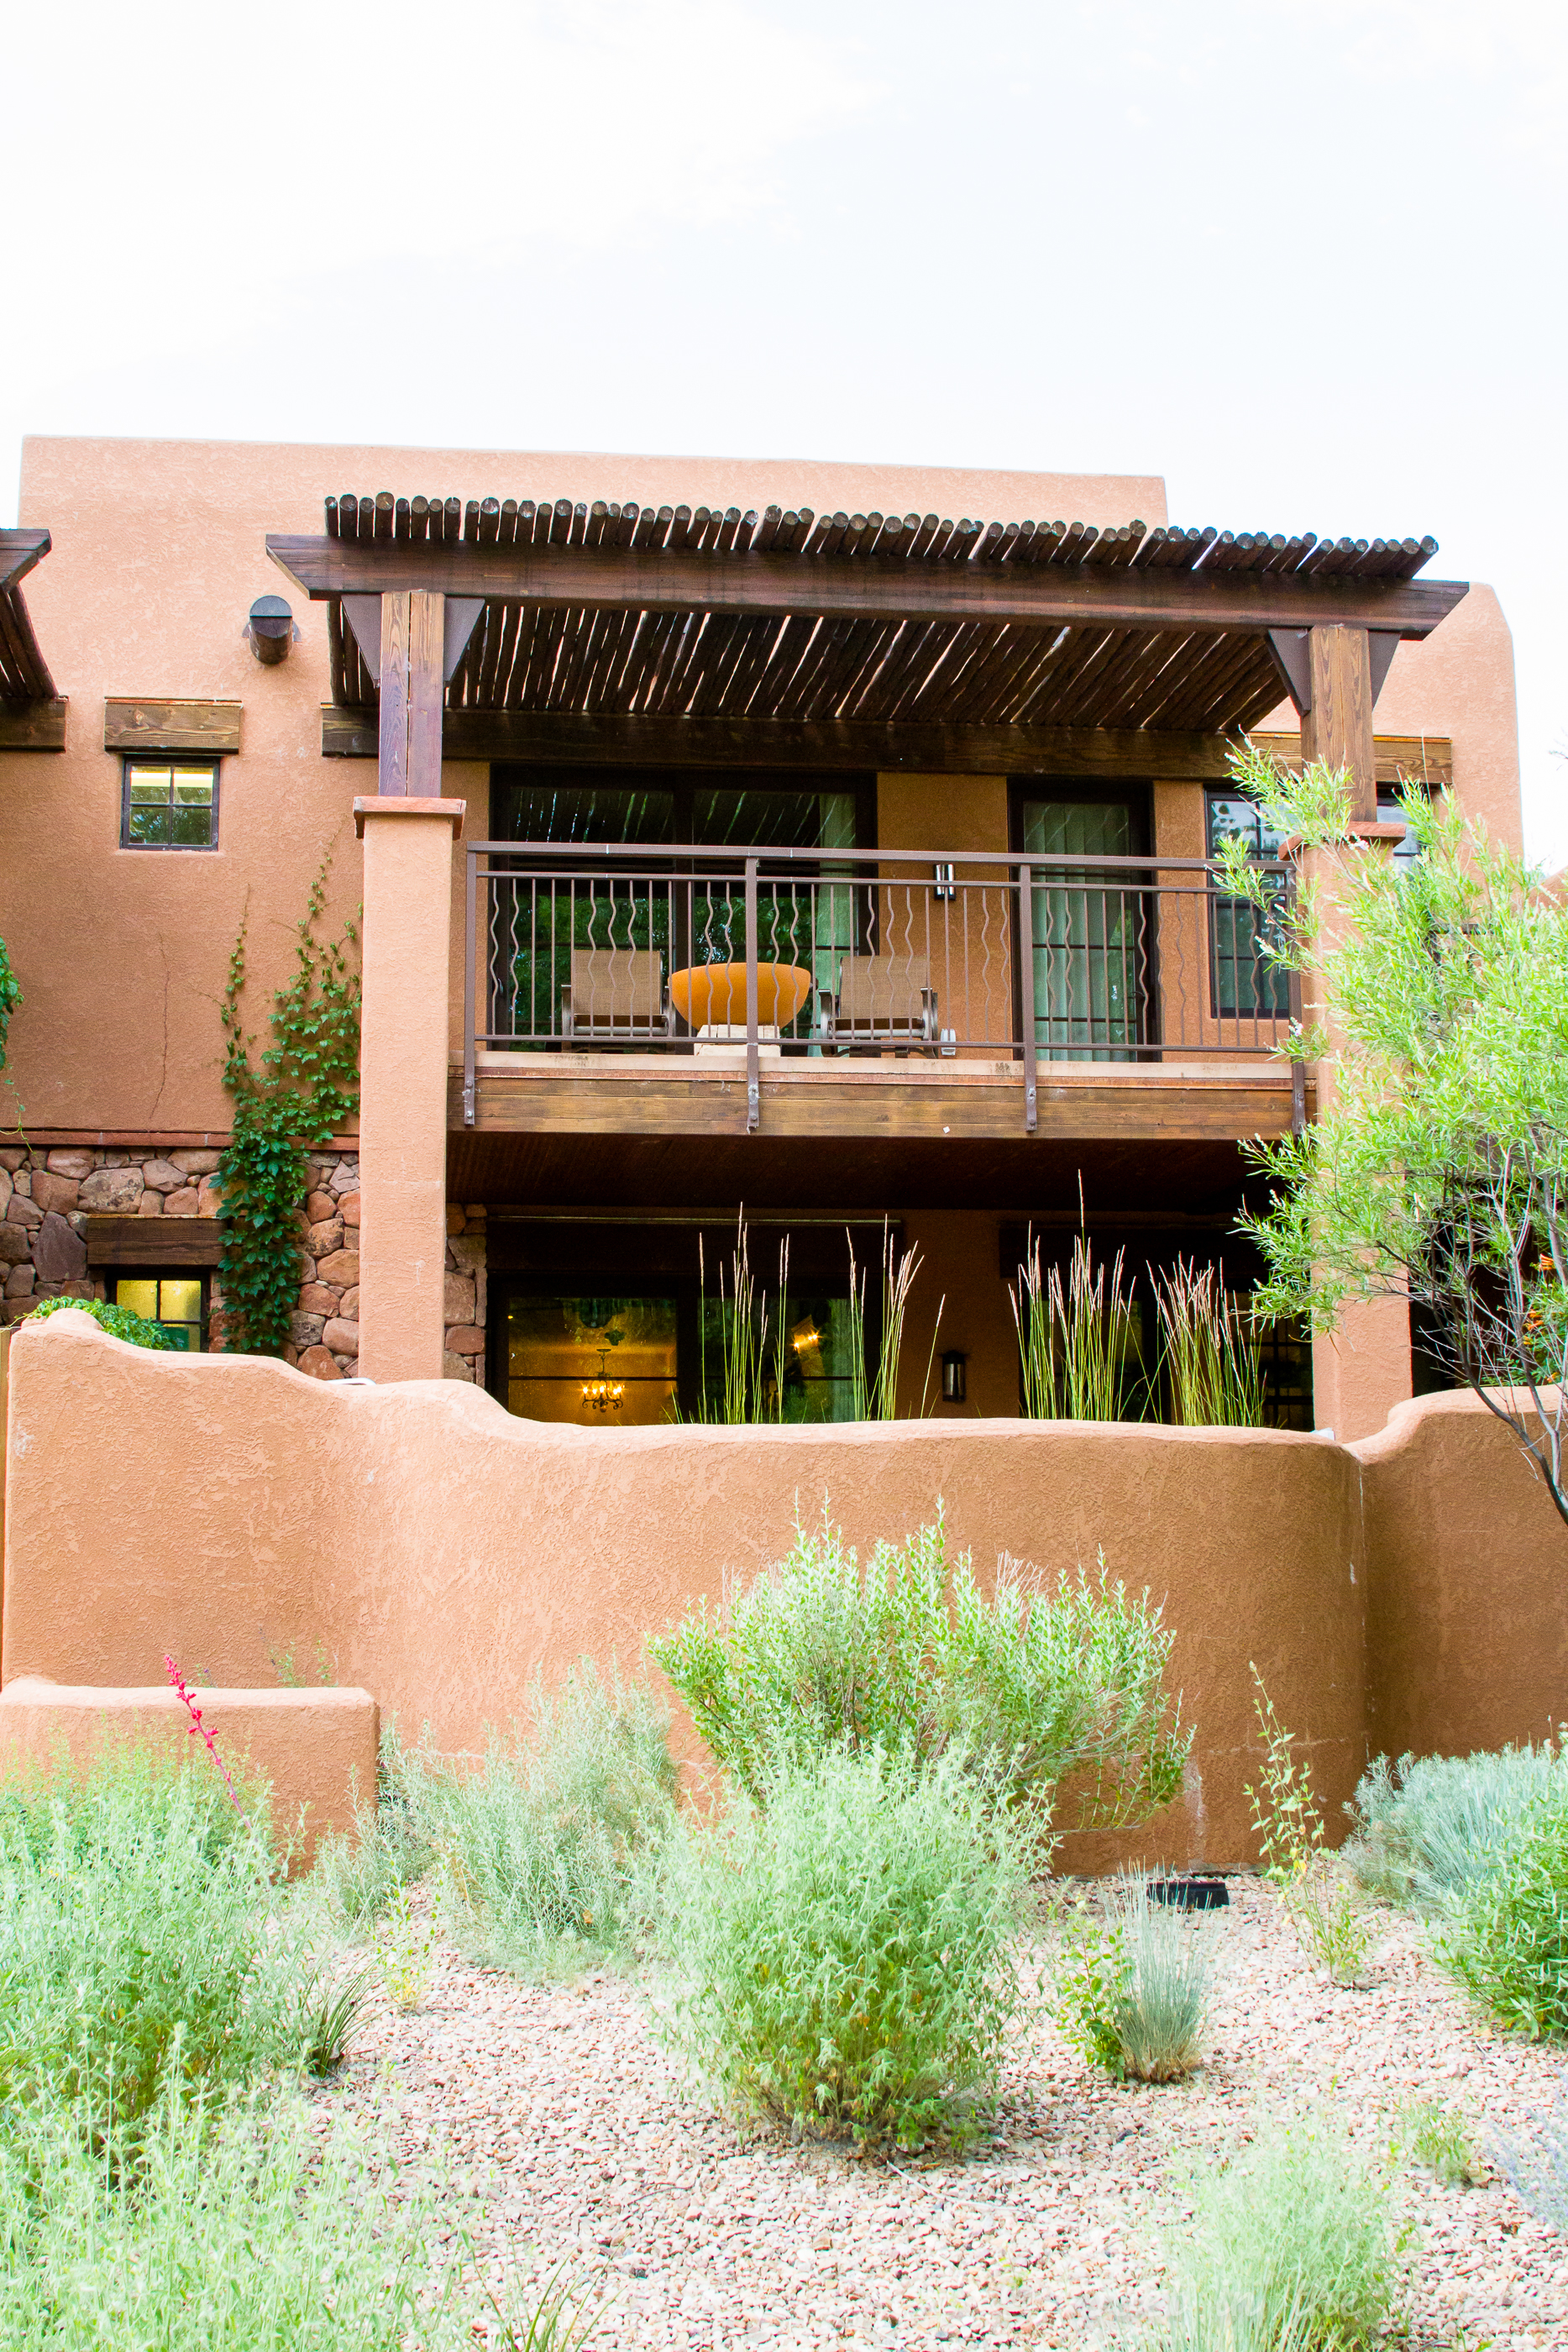 travel luxury and adventure await at gateway canyons resort